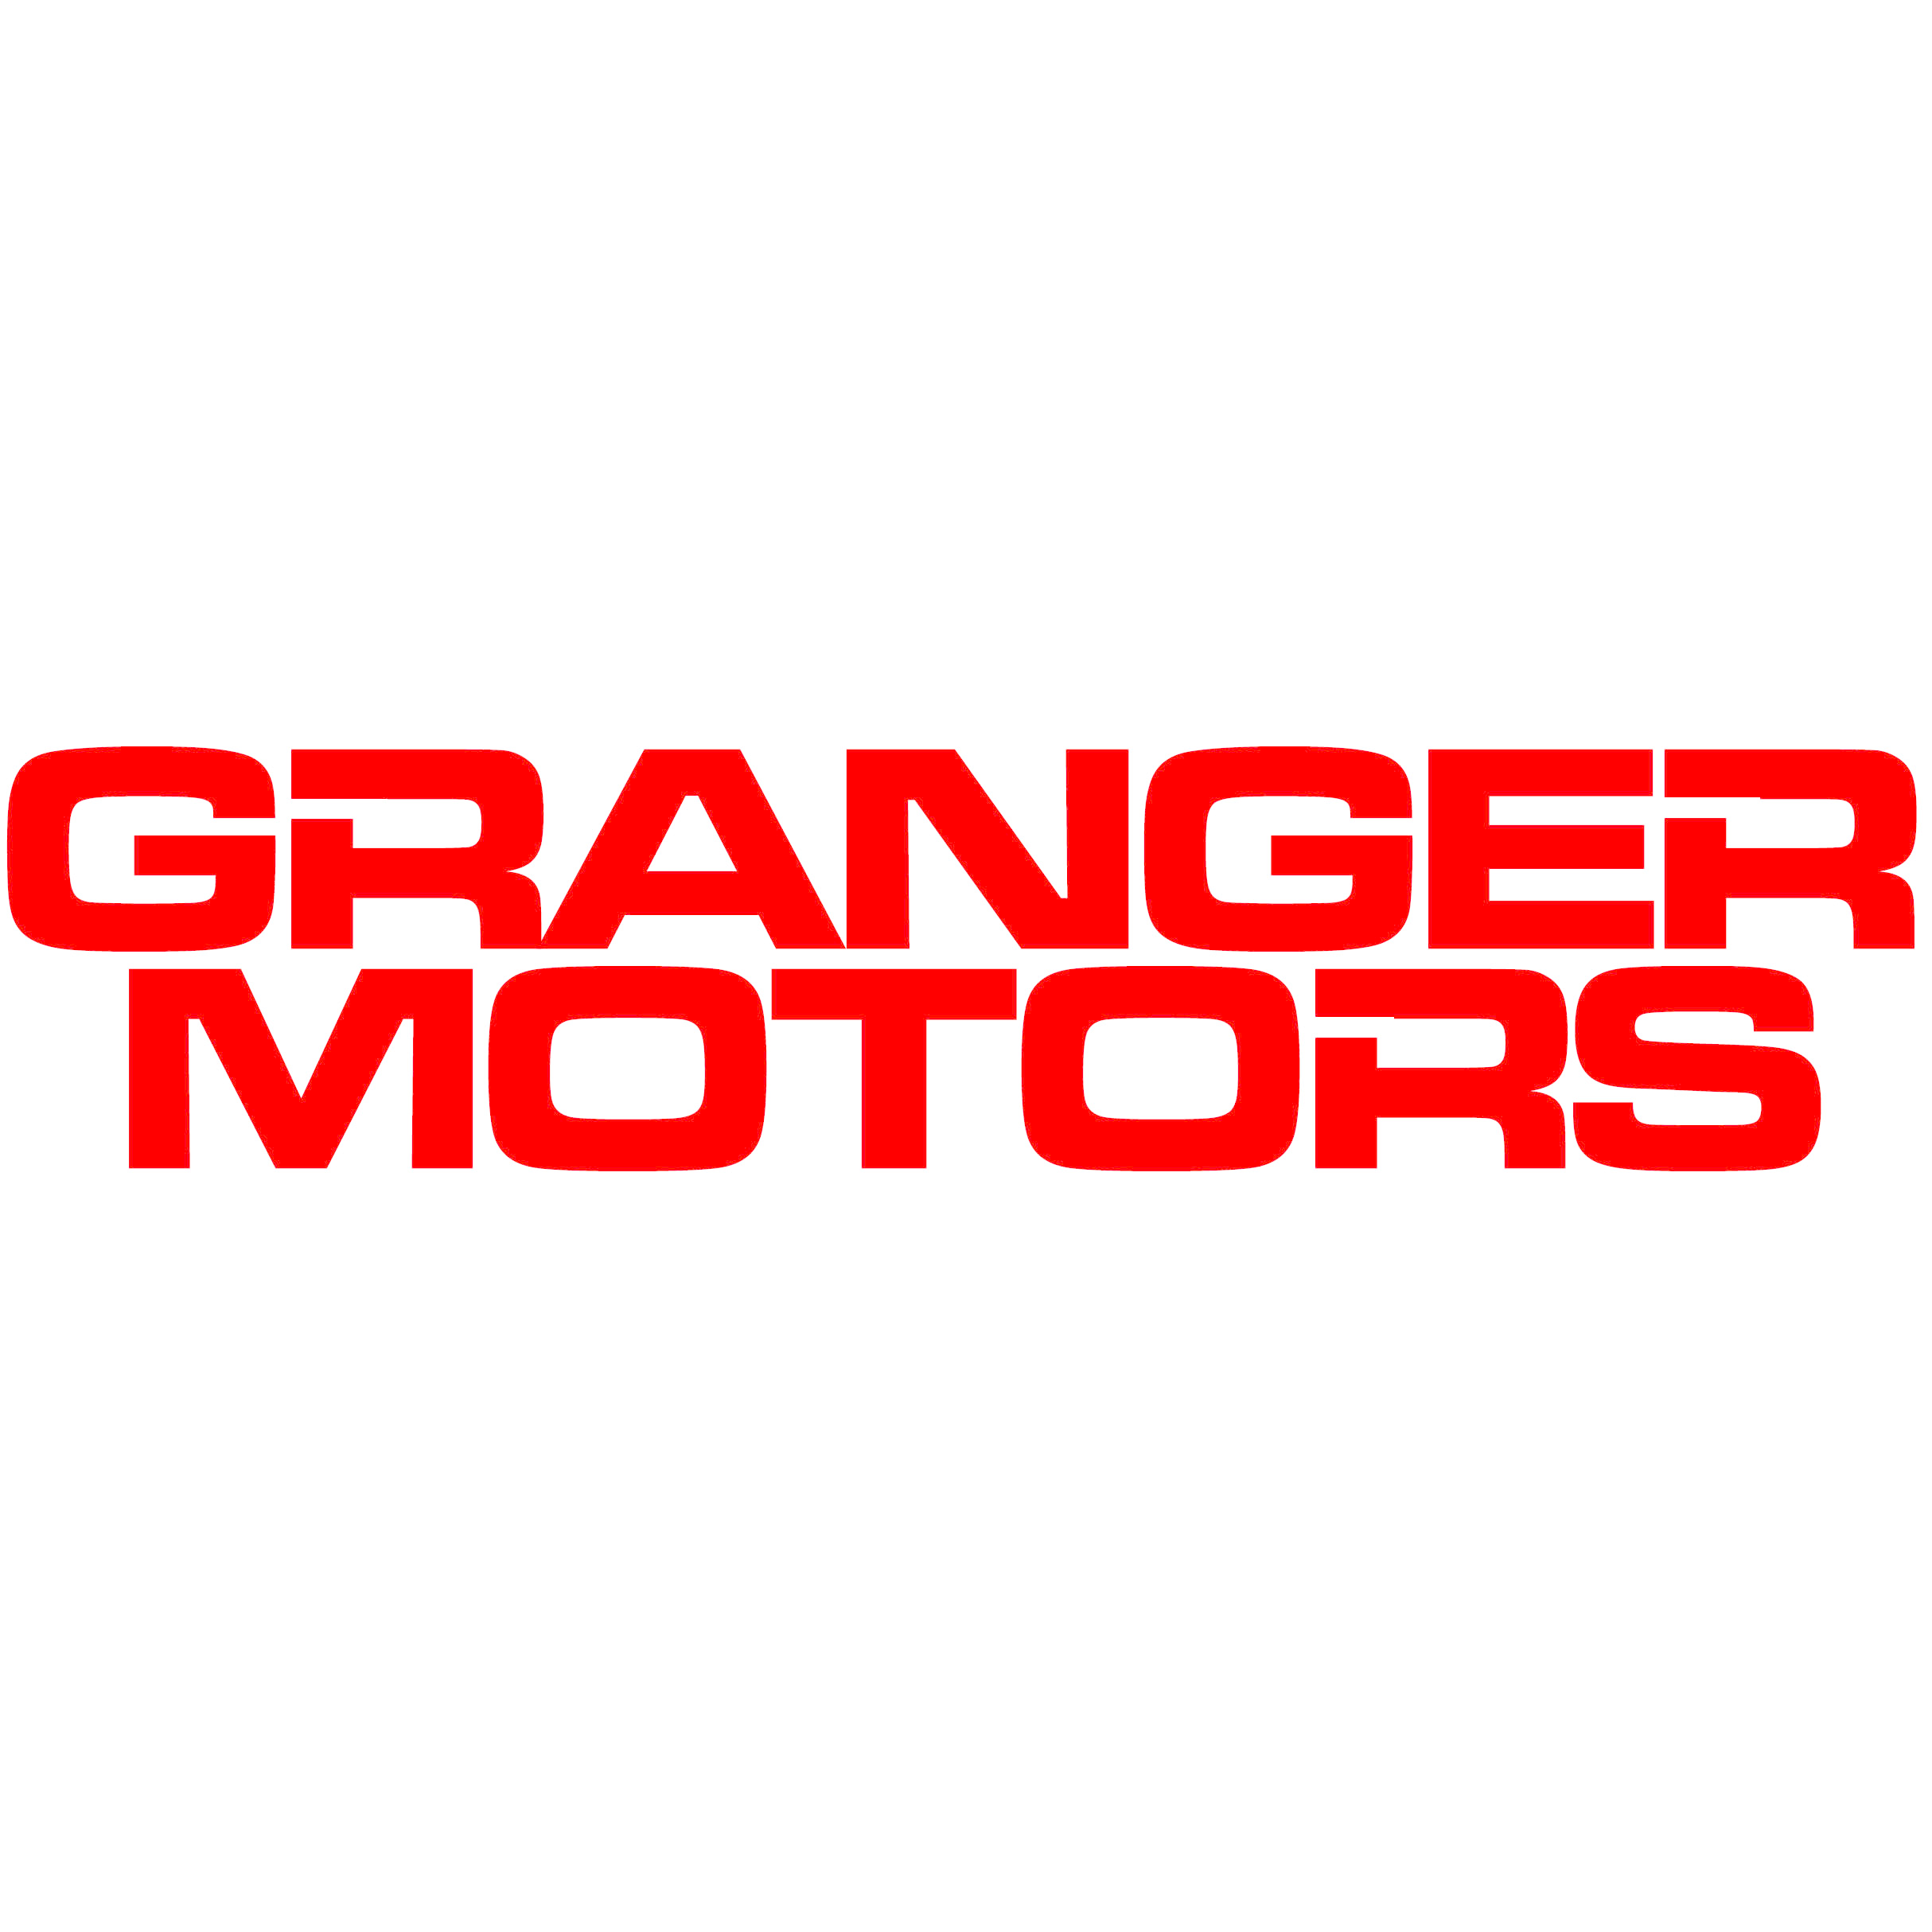 Granger motors used cars for Electric motor sales near me